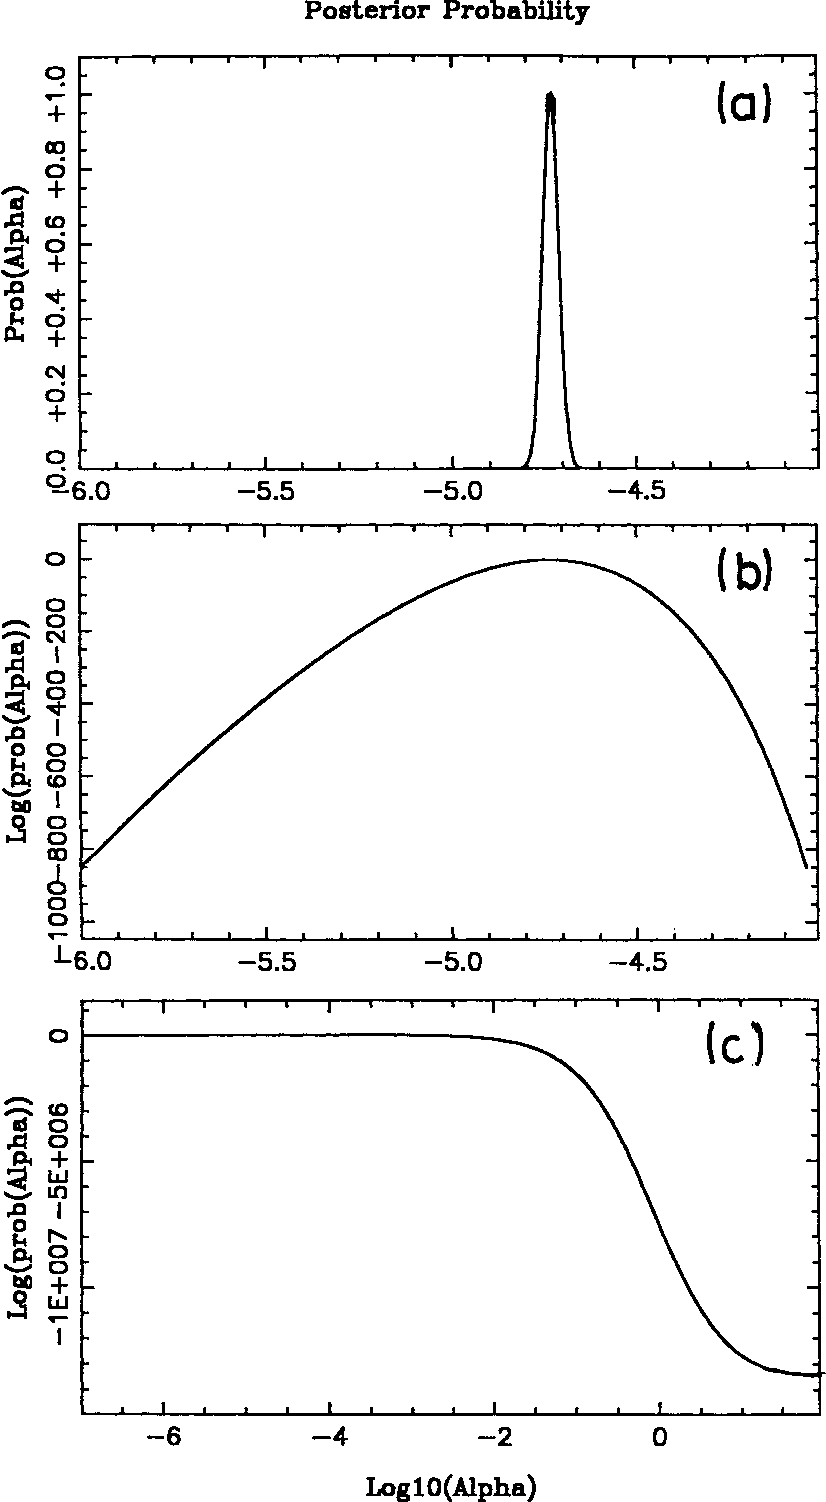 Figure 3. Posterior distribution of the smoothing parameter a for the Susie image, plotted (a) logarithmically, (b) linearly, (c) logarithmically over a large range of α.